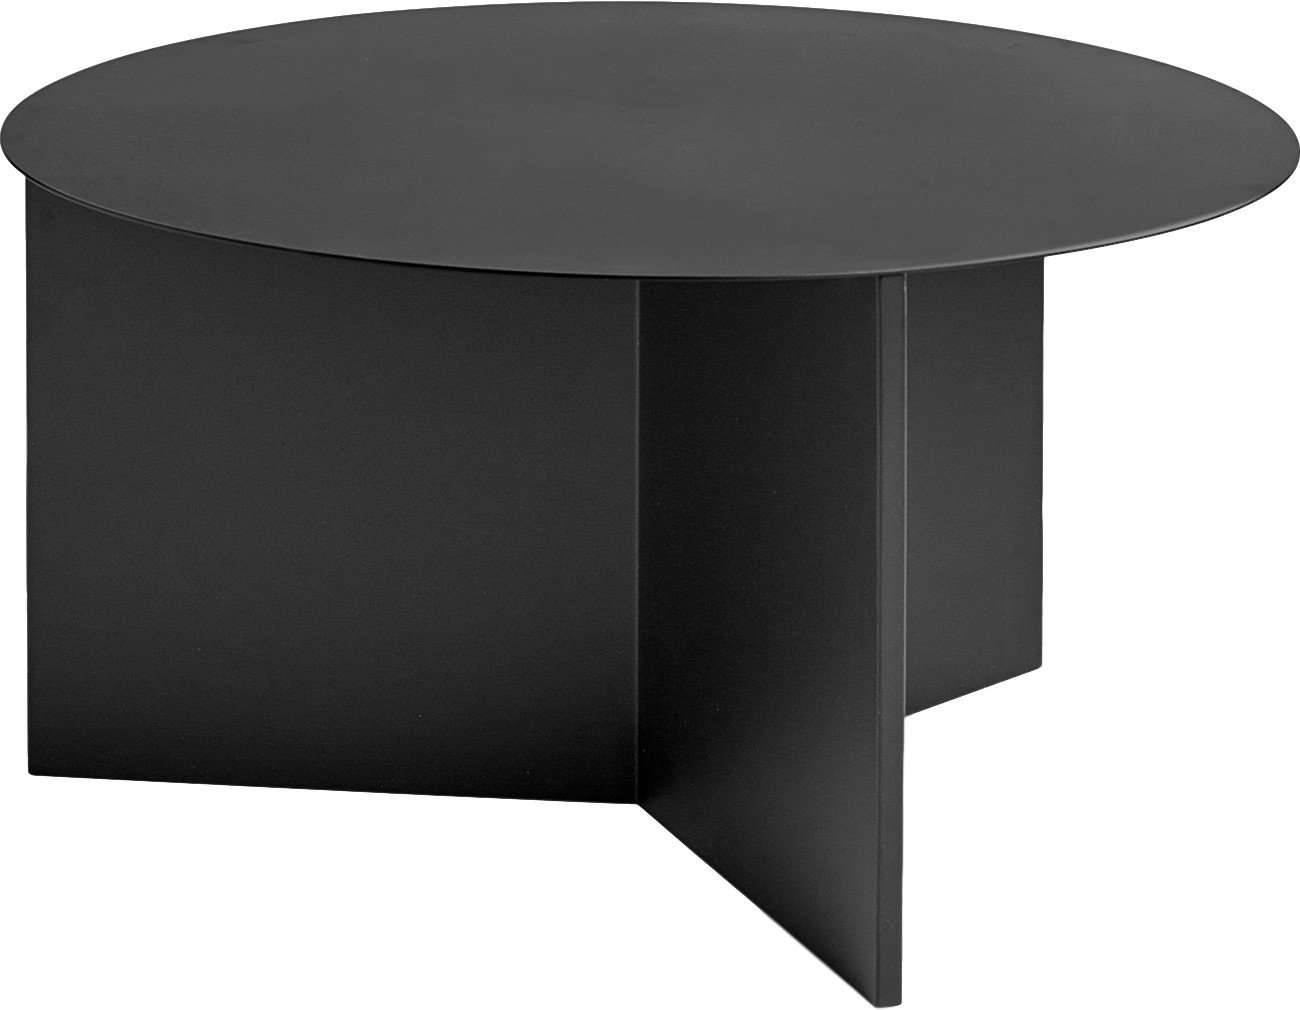 Slit Side Table Round XL Black, HAY